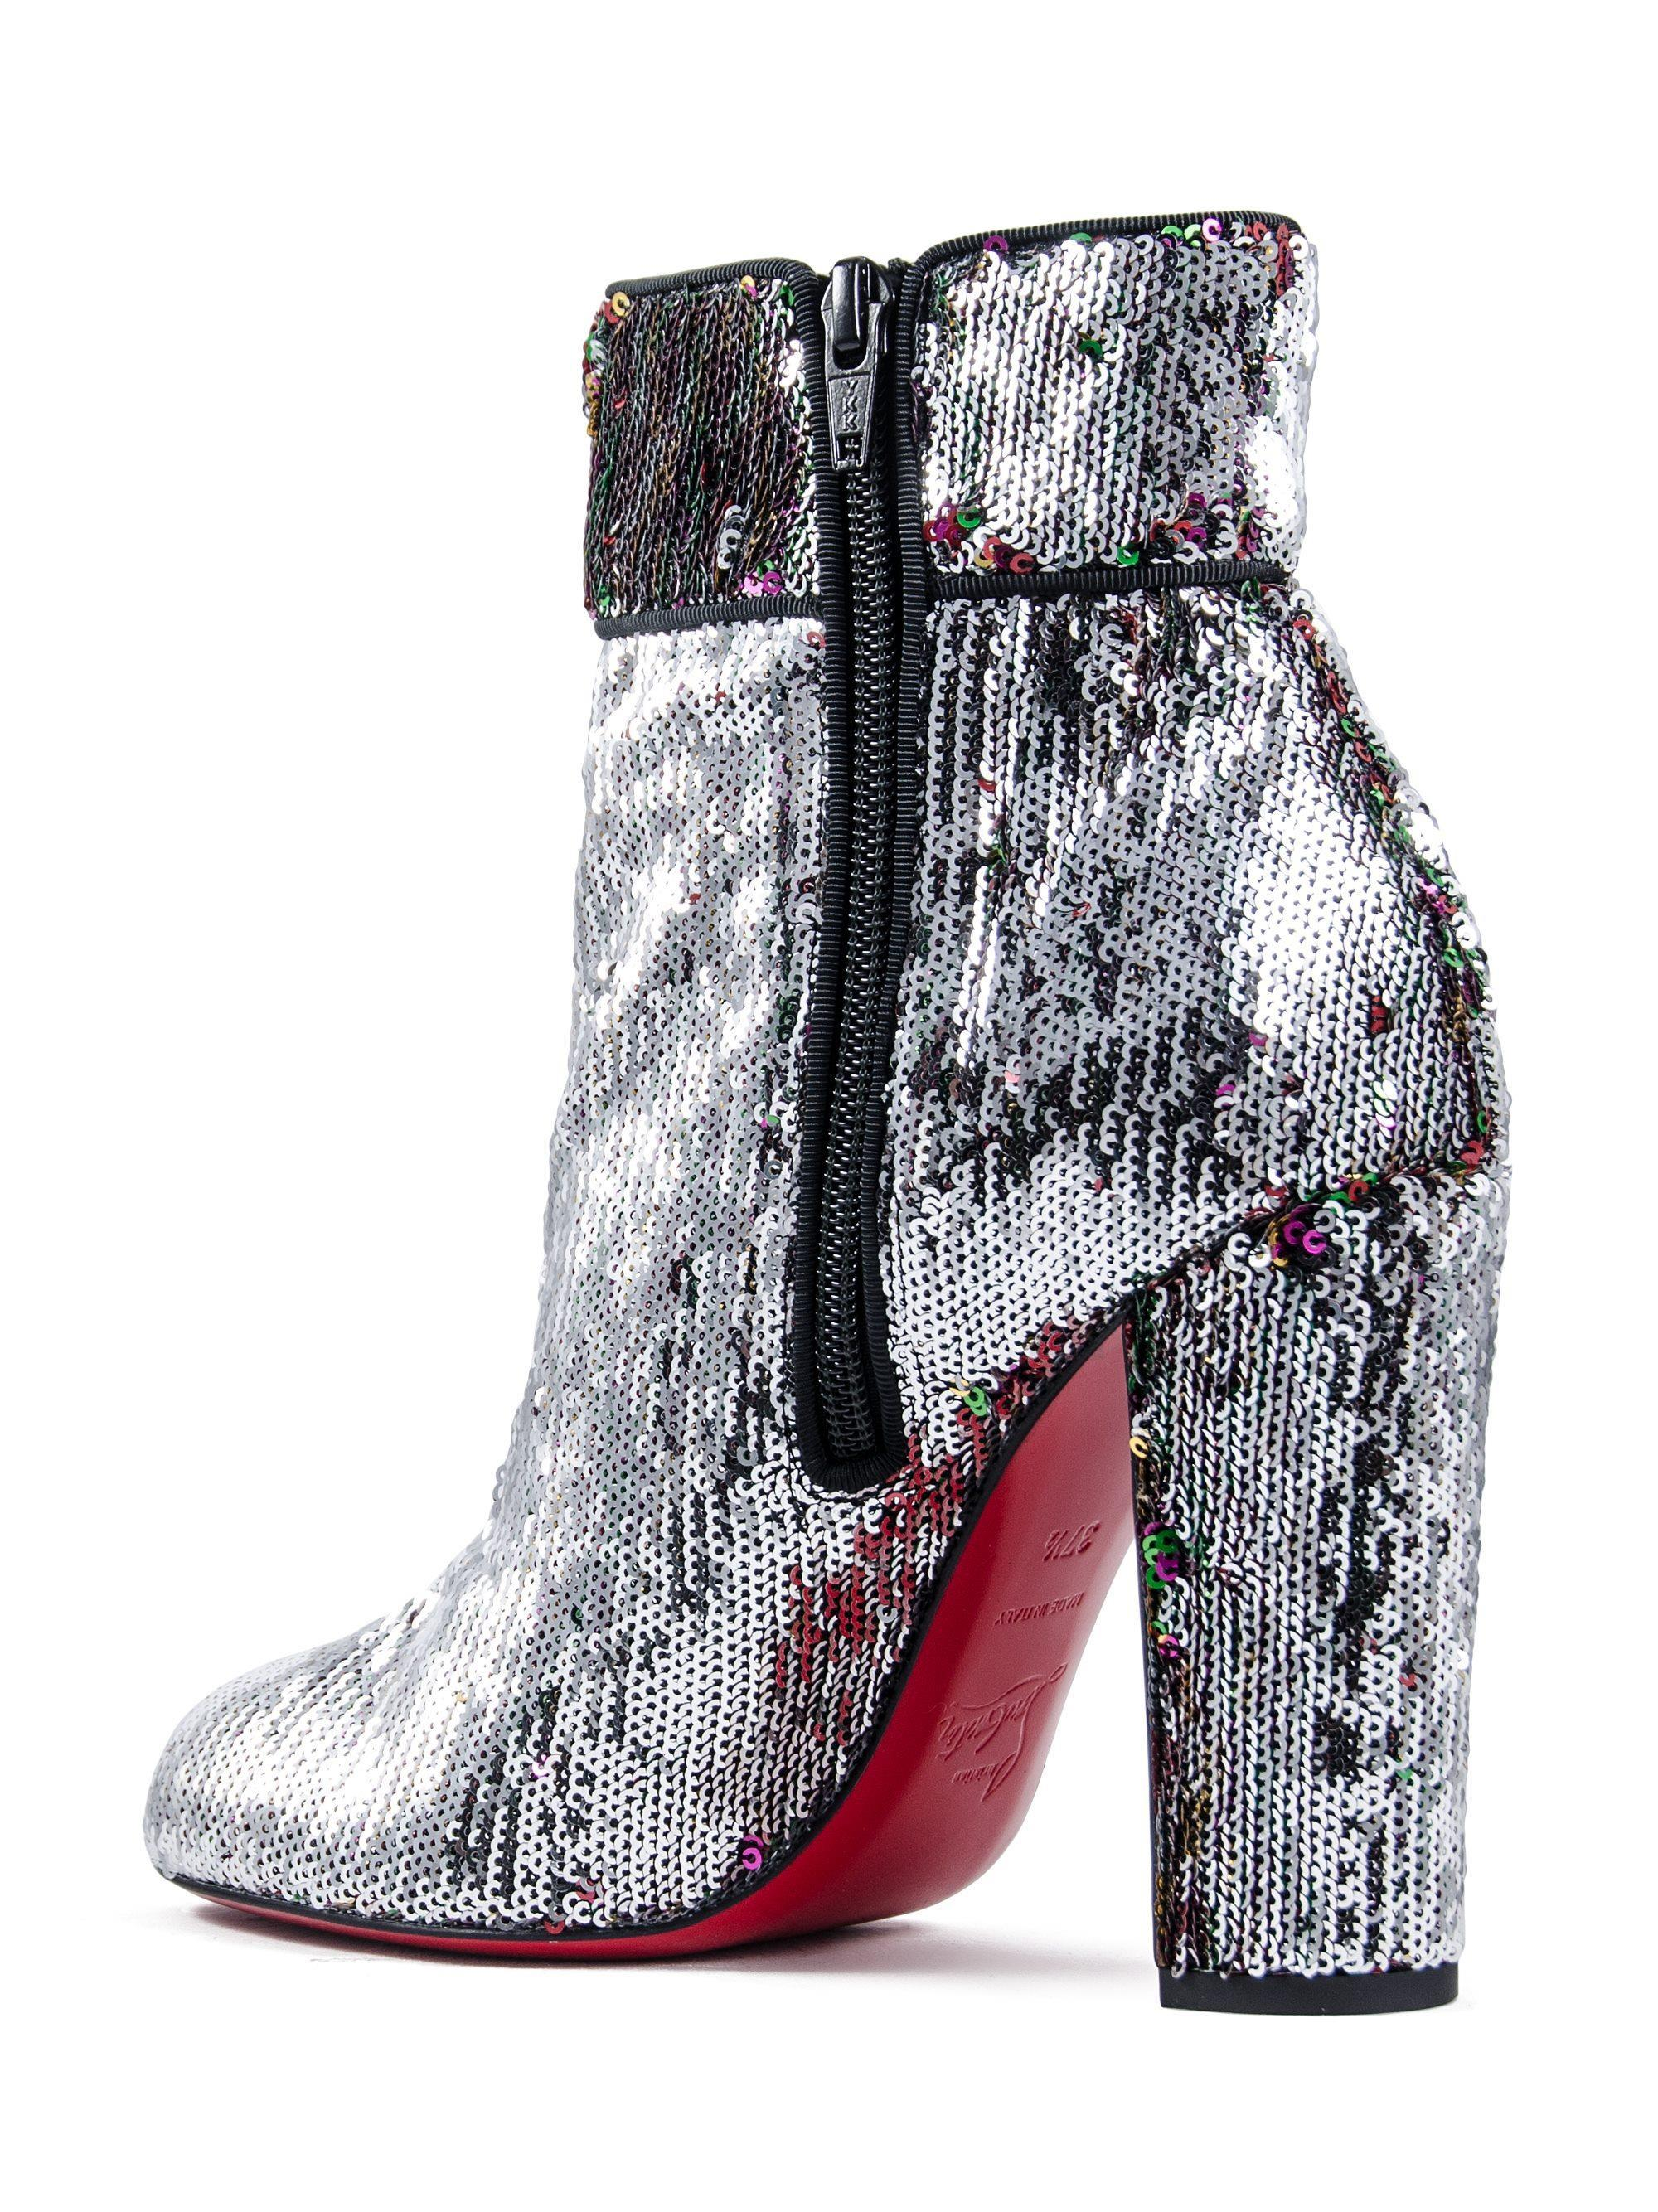 best website 63eb8 5f46e Christian Louboutin Multicolor Moulamax 100 Sequined Ankle Boots